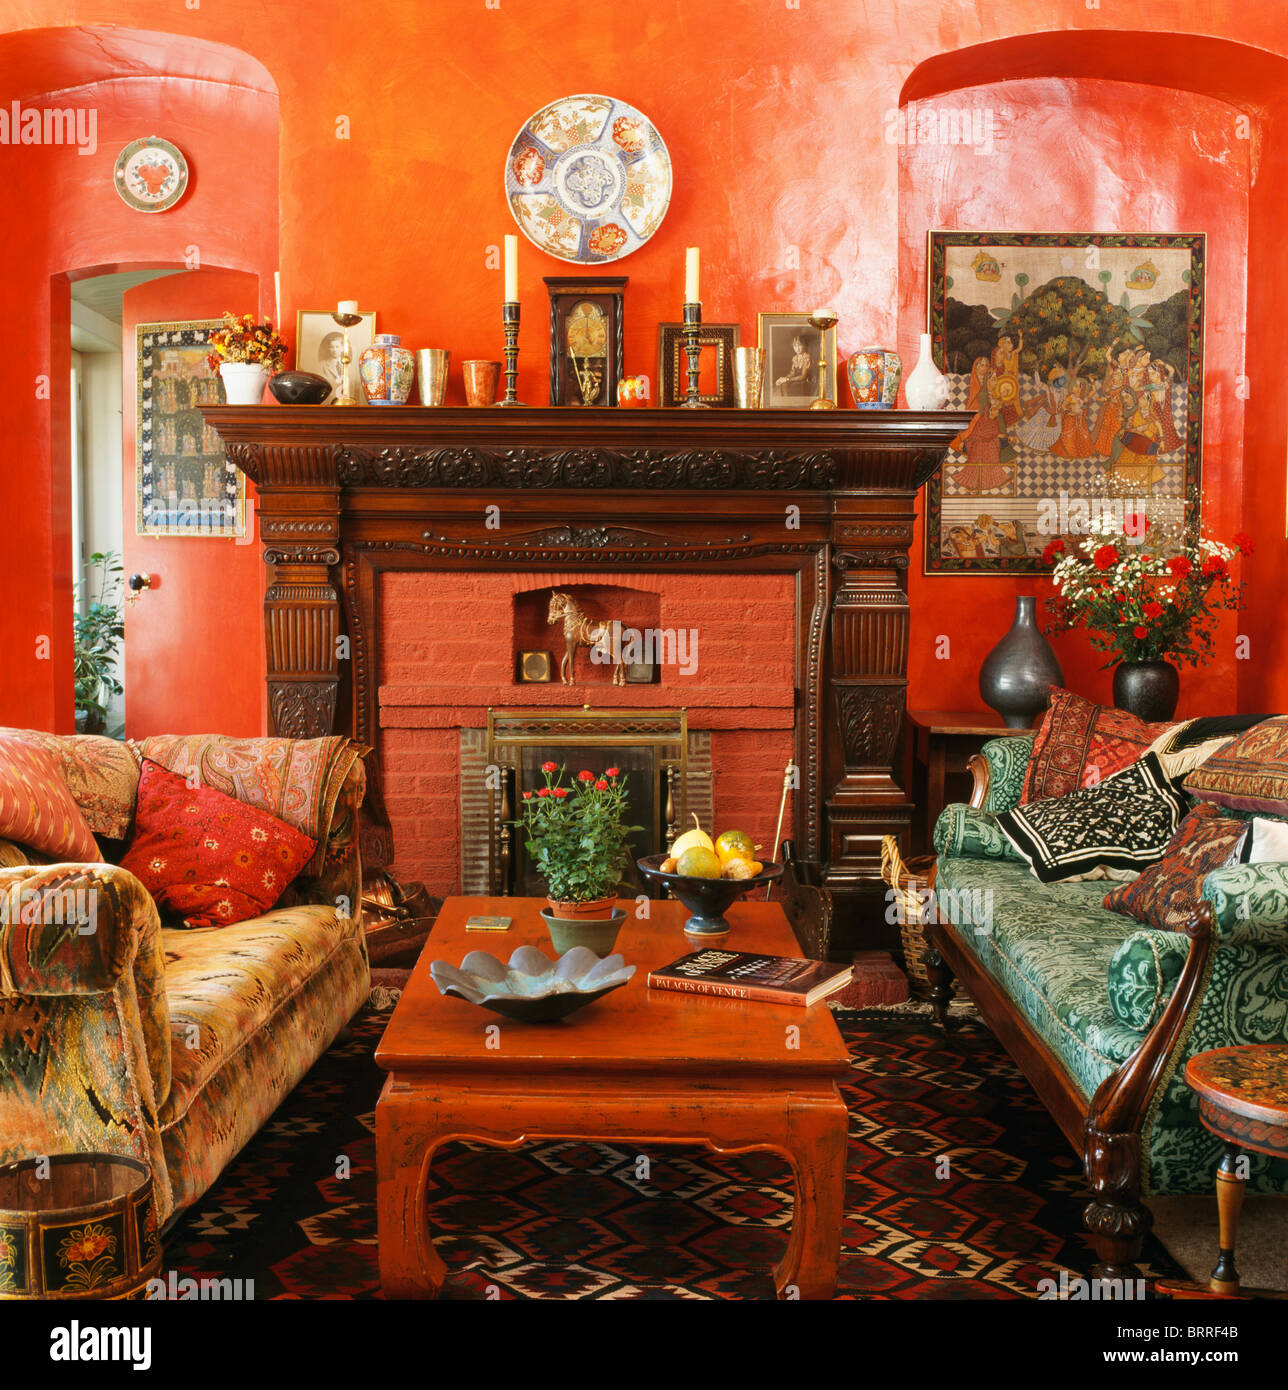 Alcoves On Either Side Fireplace Stock Photos & Alcoves On ...